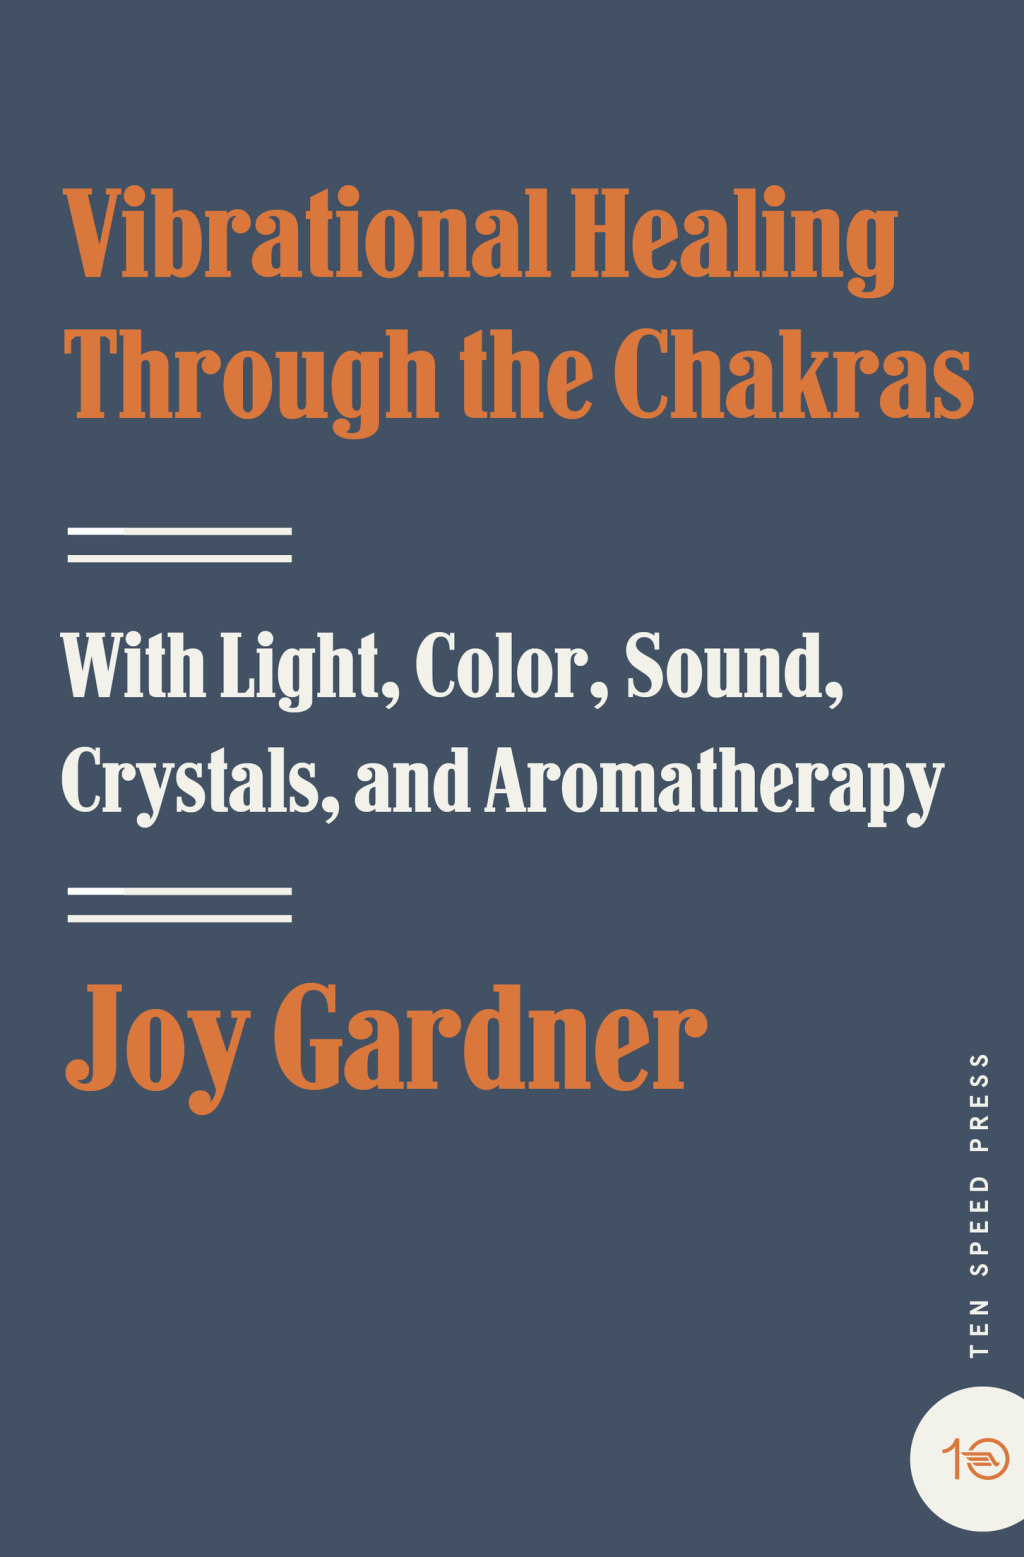 Vibrational Healing Through the Chakras (ebook) eBooks